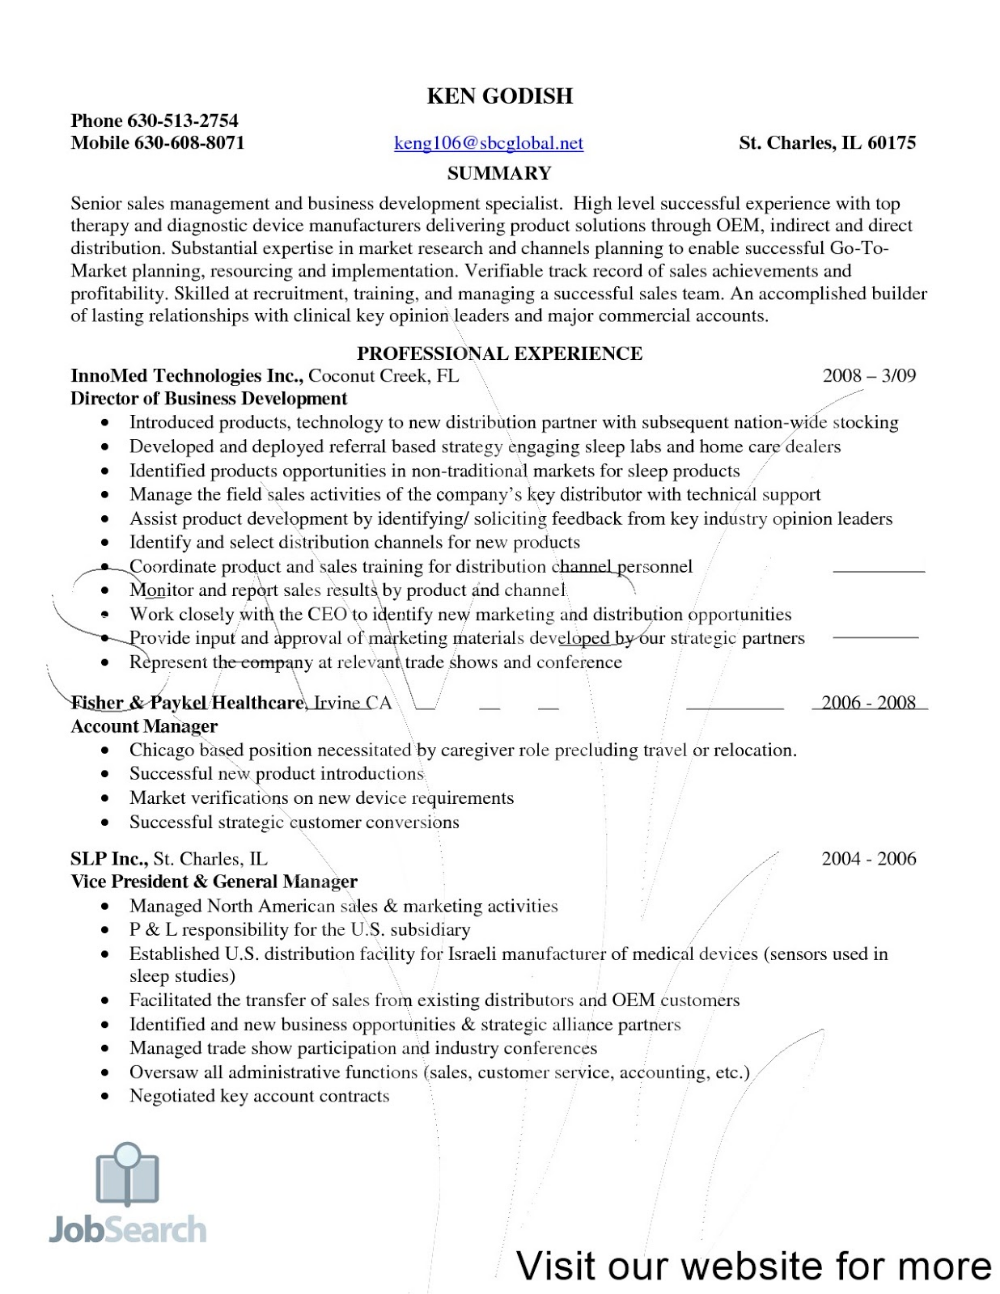 Childcare Resume Samples Childcare Business Jobs in 2020